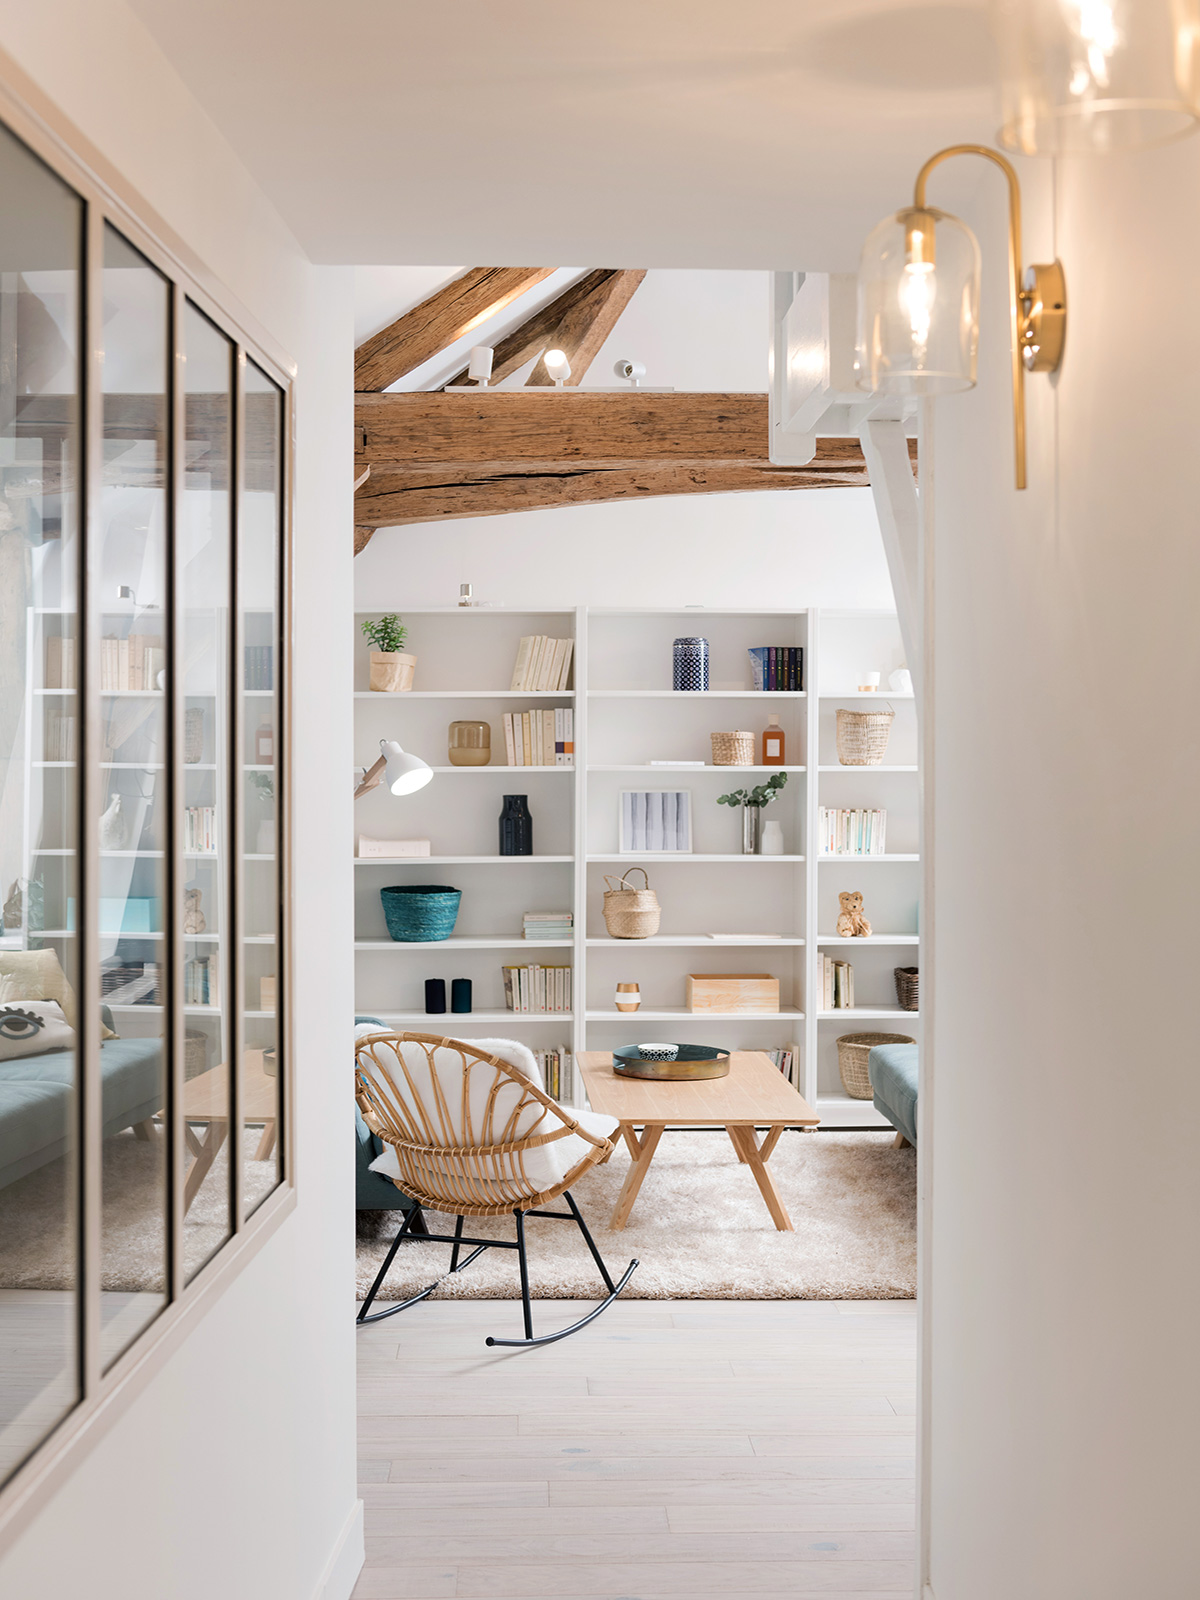 meuble-sur-mesure-bois-metal-bibliotheque-bureau-agence-atmospheres-design-joa-architecture-dinterieur-meuble-design-interioir-design-paris-oise-idee-deco